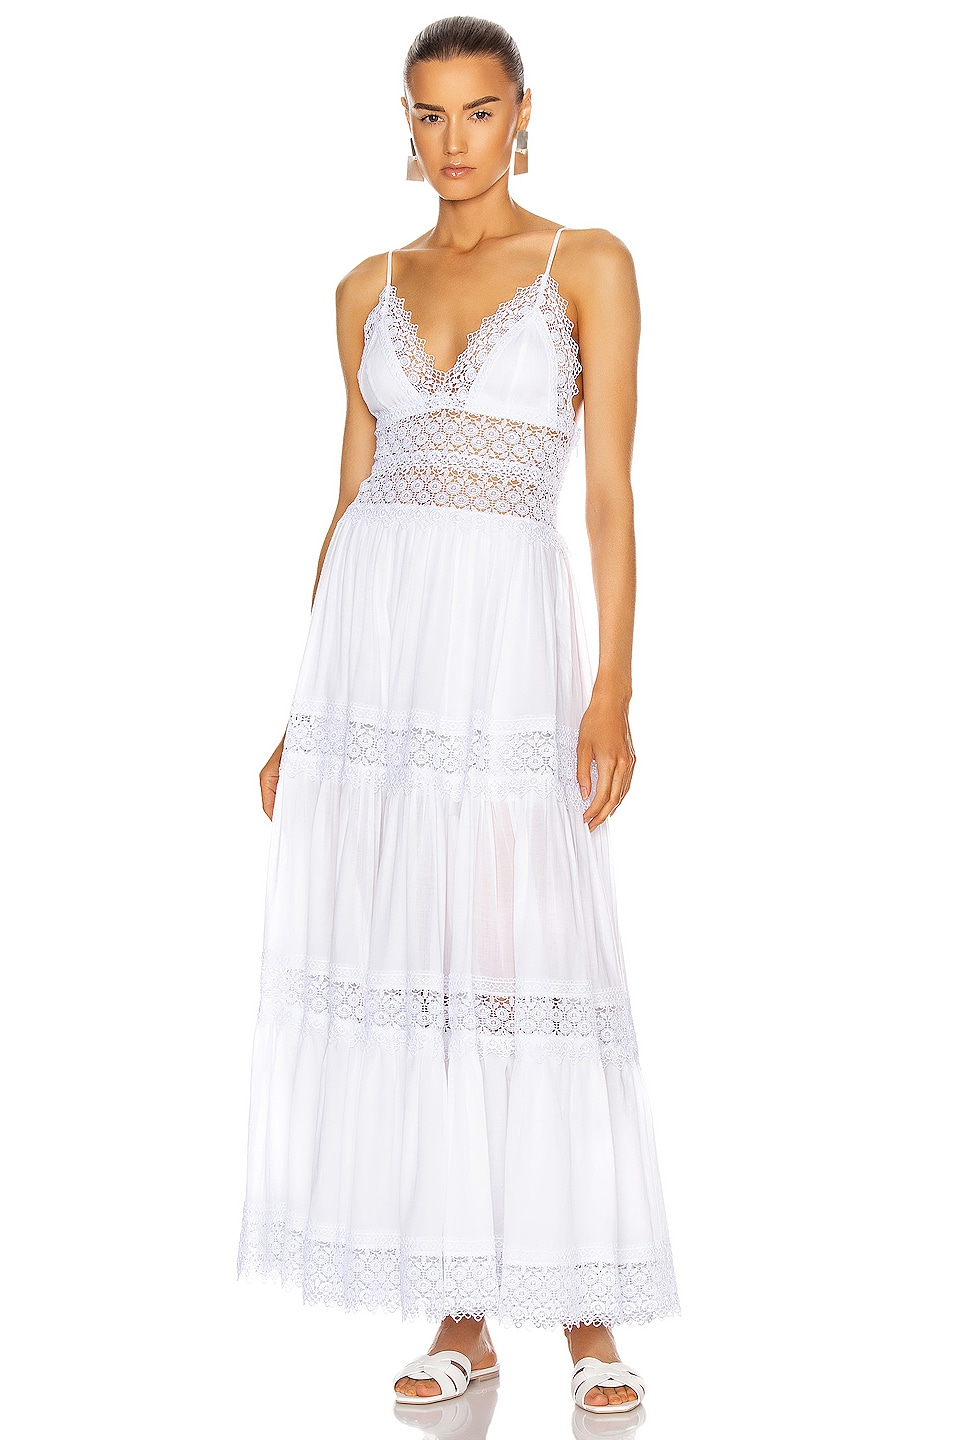 Image 1 of Charo Ruiz Ibiza Cindy Dress in White